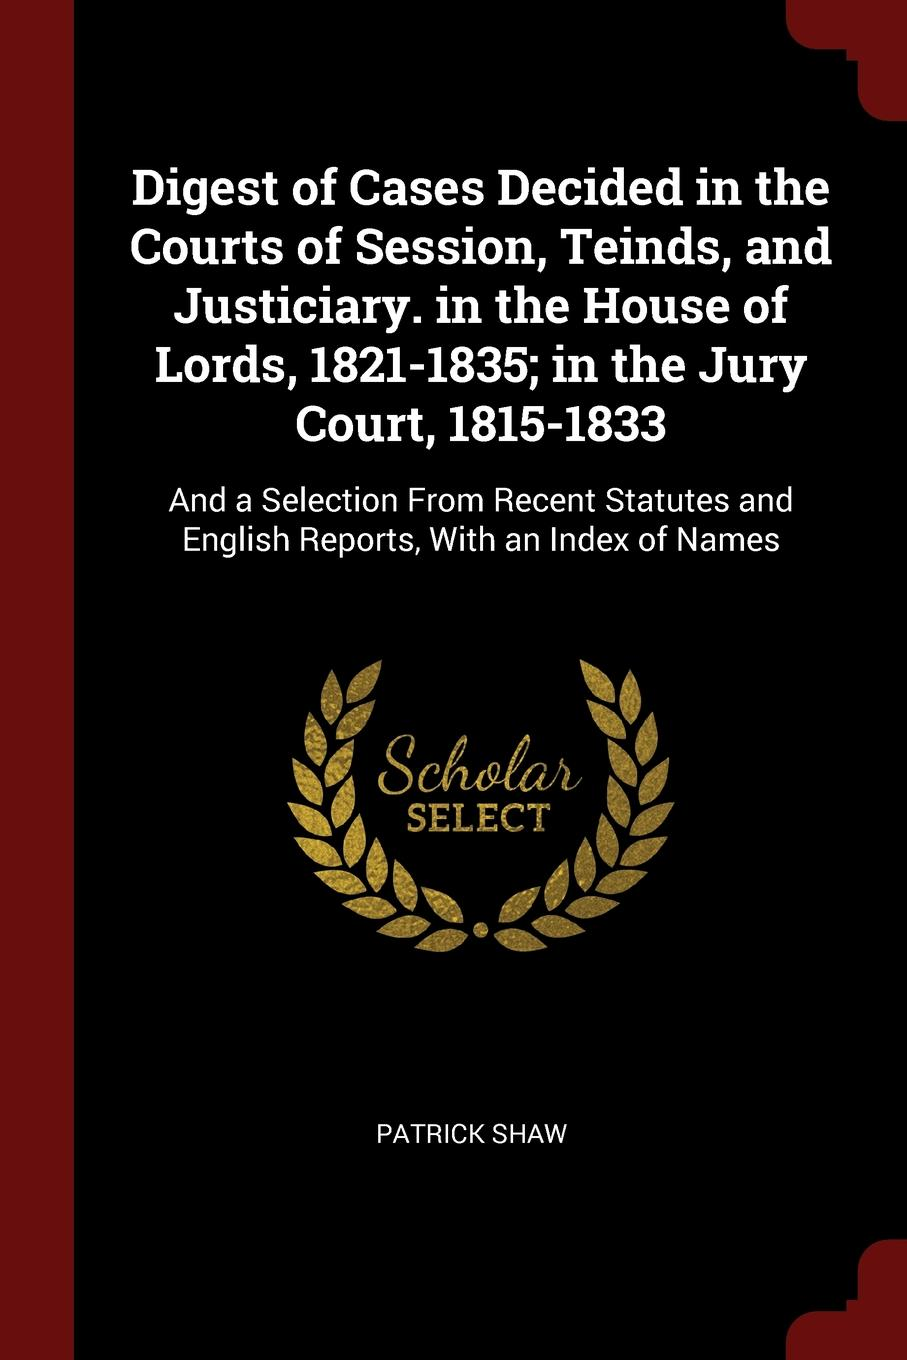 Patrick Shaw Digest of Cases Decided in the Courts Session, Teinds, and Justiciary. House Lords, 1821-1835; Jury Court, 1815-1833. And a Selection From Recent Statutes English Reports, With an Index Names